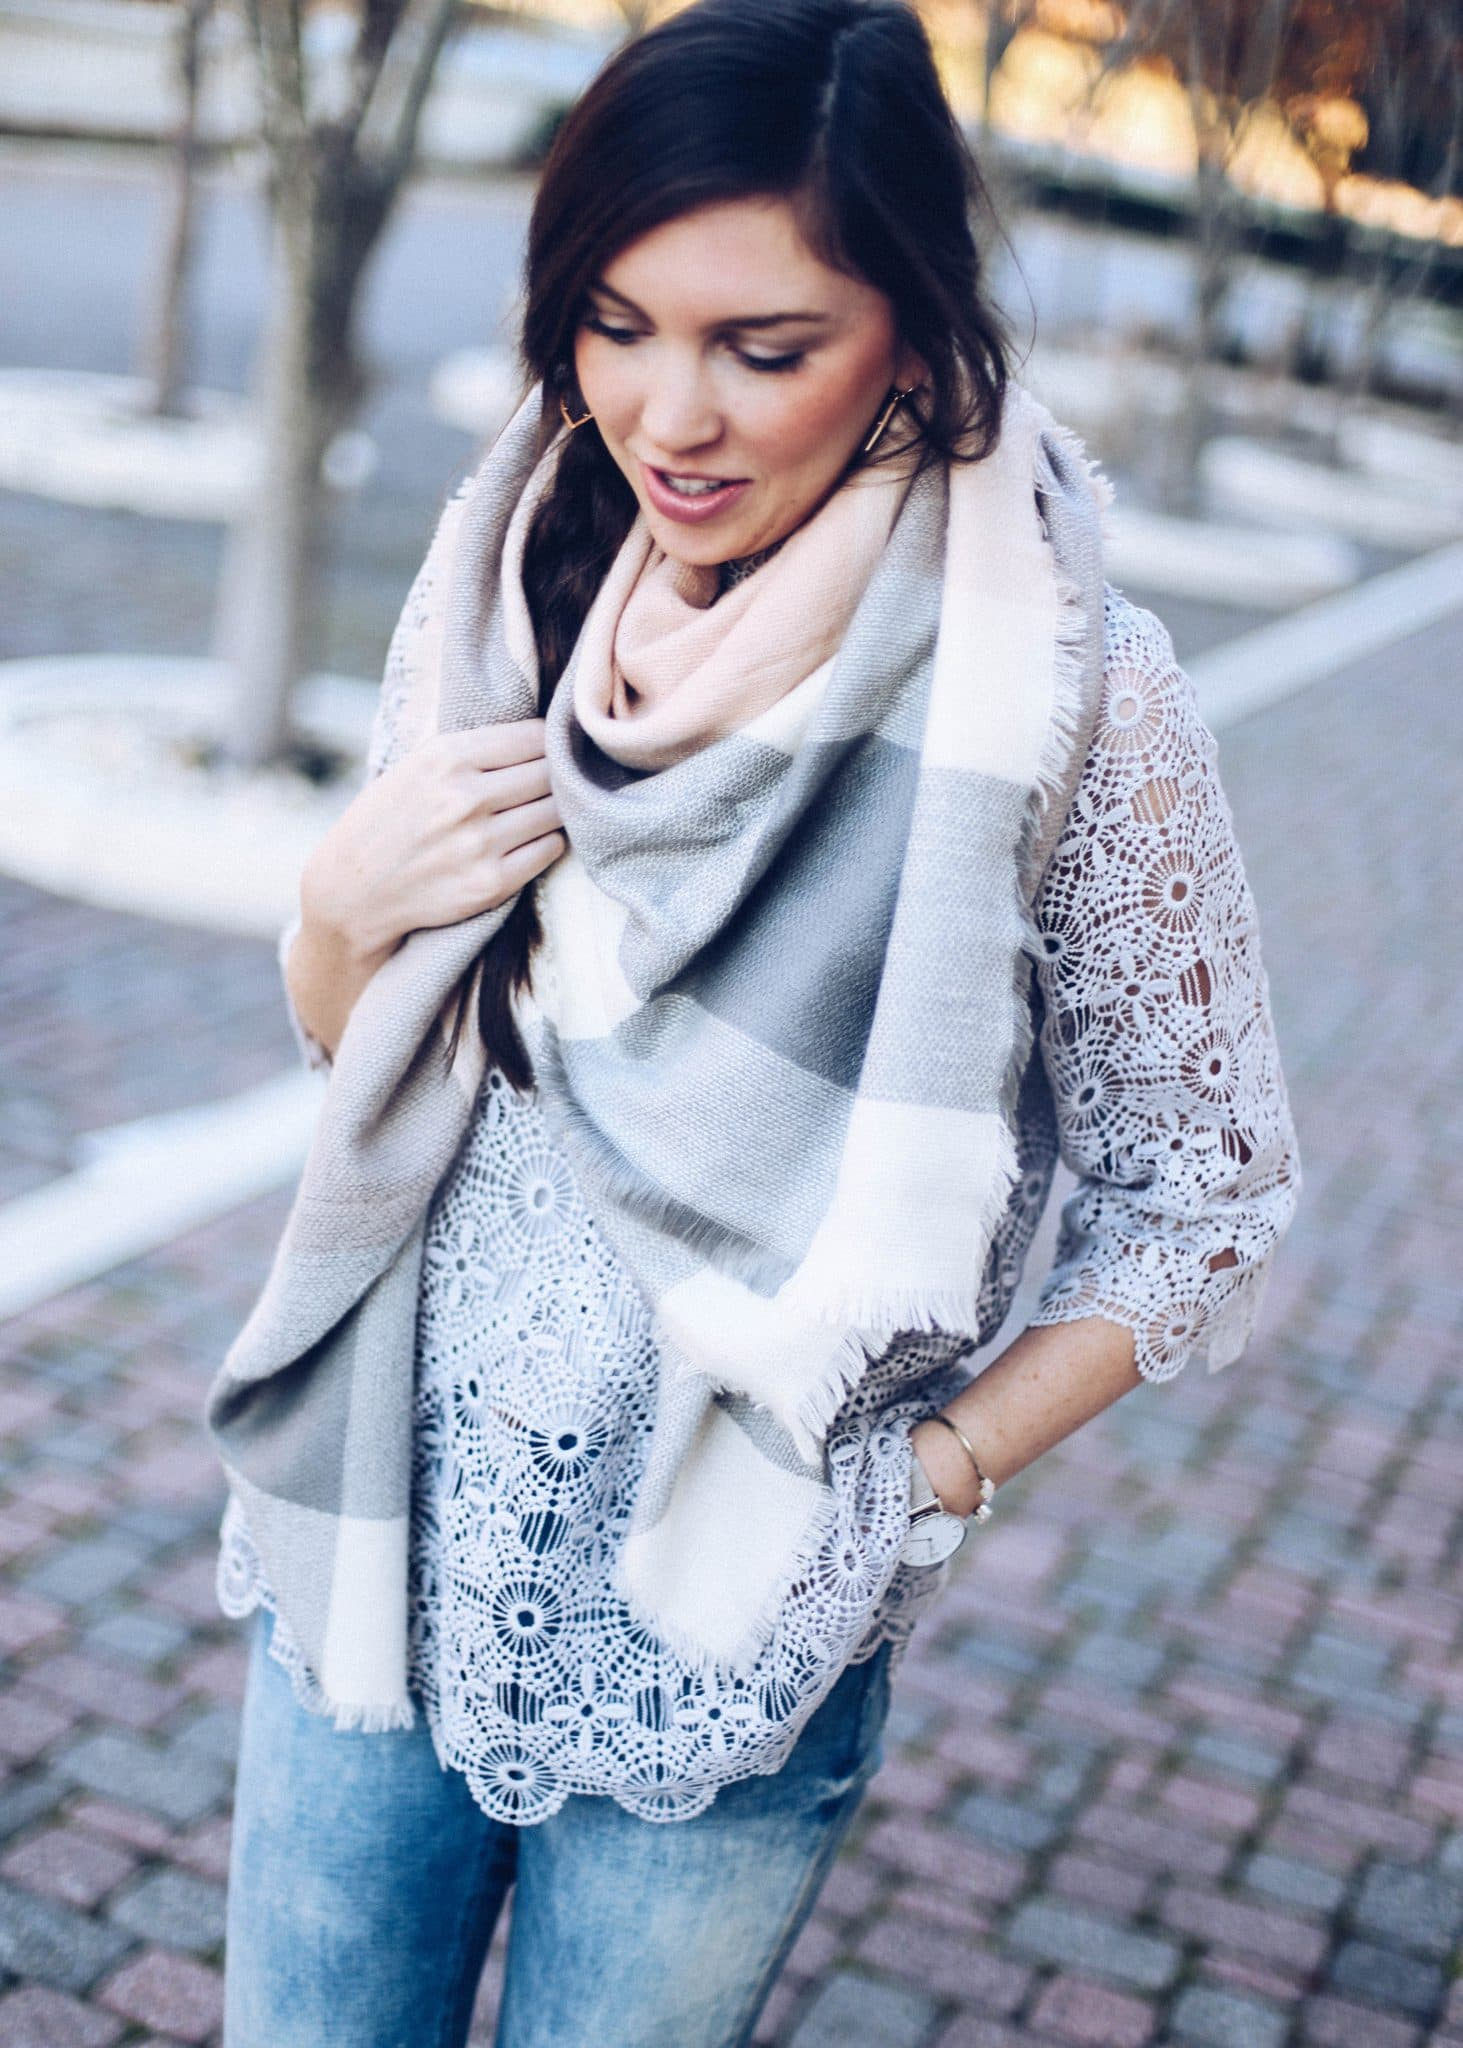 blanket scarf, swirling honey, pretty in the pines, north carolina blog, nc blogger, 12 days of giveaways, 12 days of christmas, blogmas, grey suede loafers, distressed denim, chic wish lace top